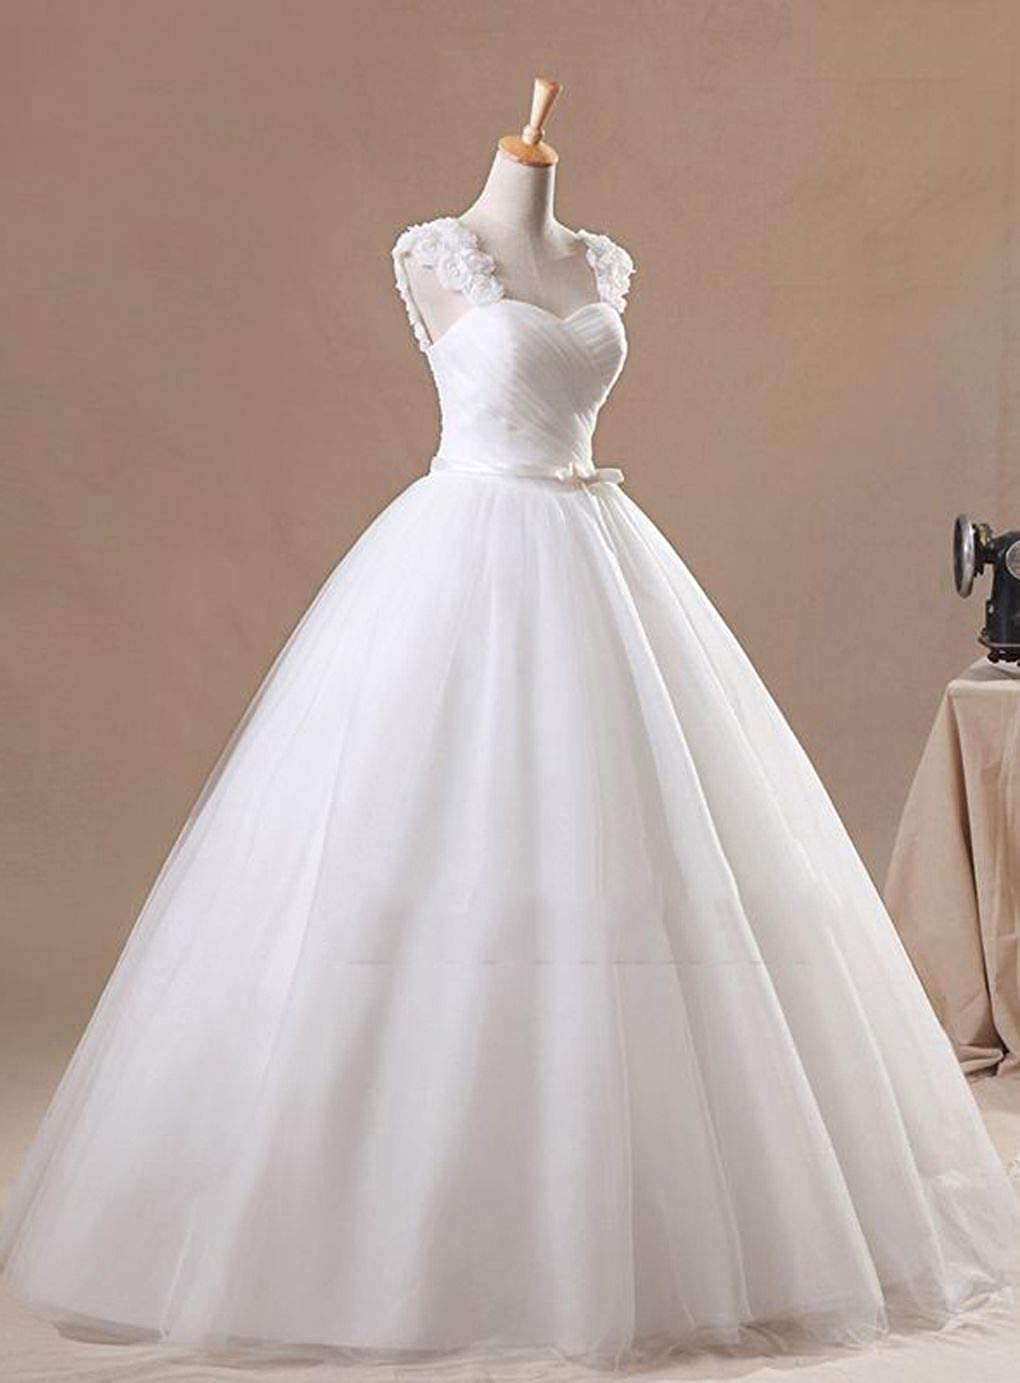 Snowskite Womens Sweetheart Puffy Ball Gown Wedding Dress